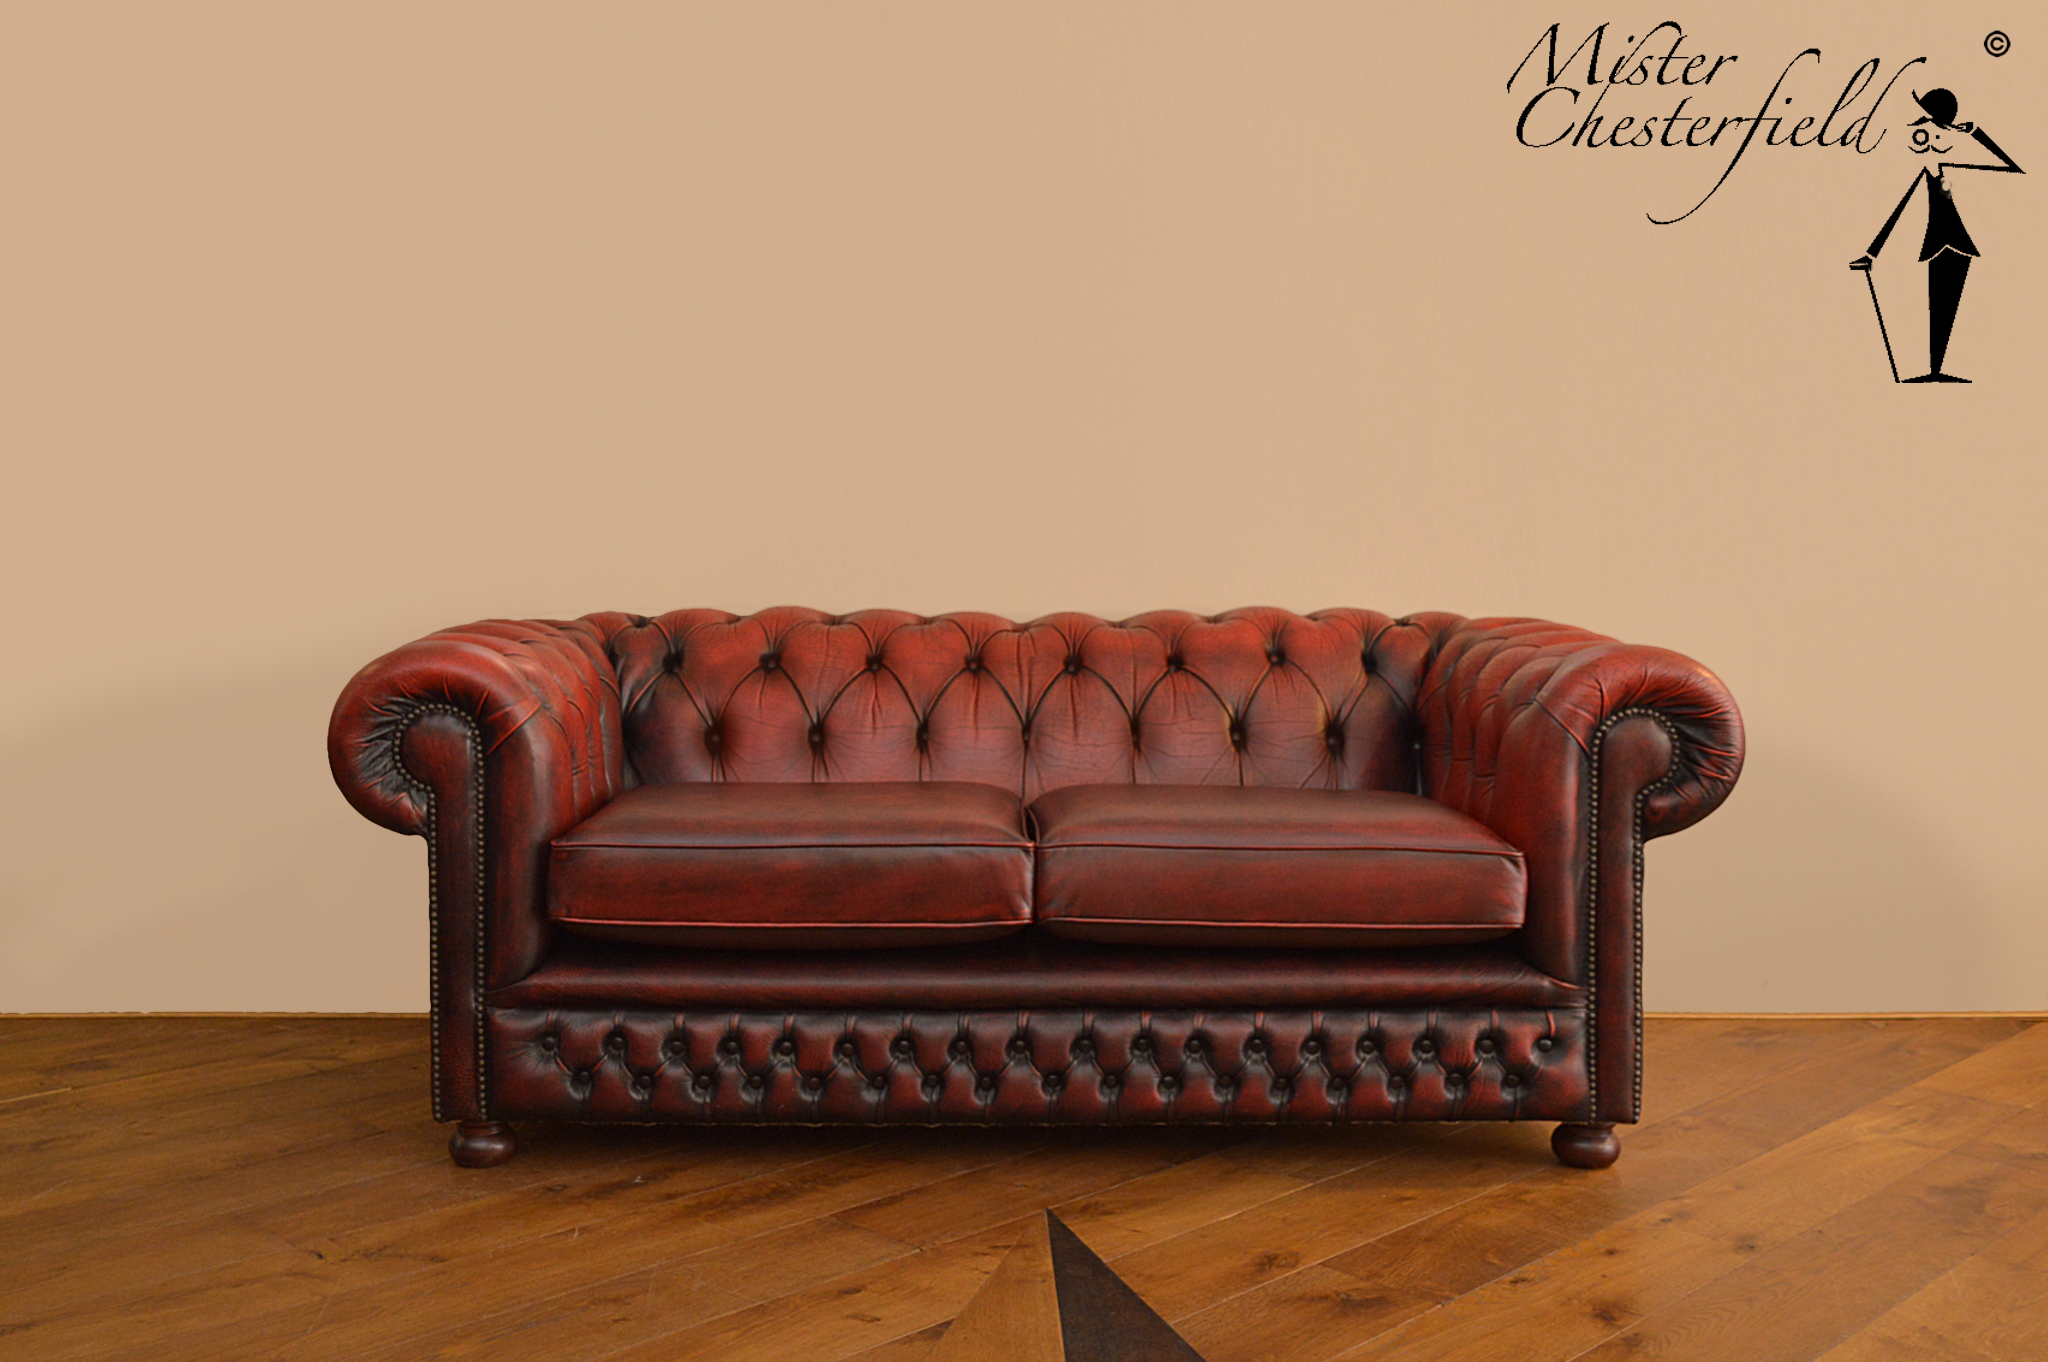 Nr 18 Chesterfield Sofa In Oxblood Directly Available Mister